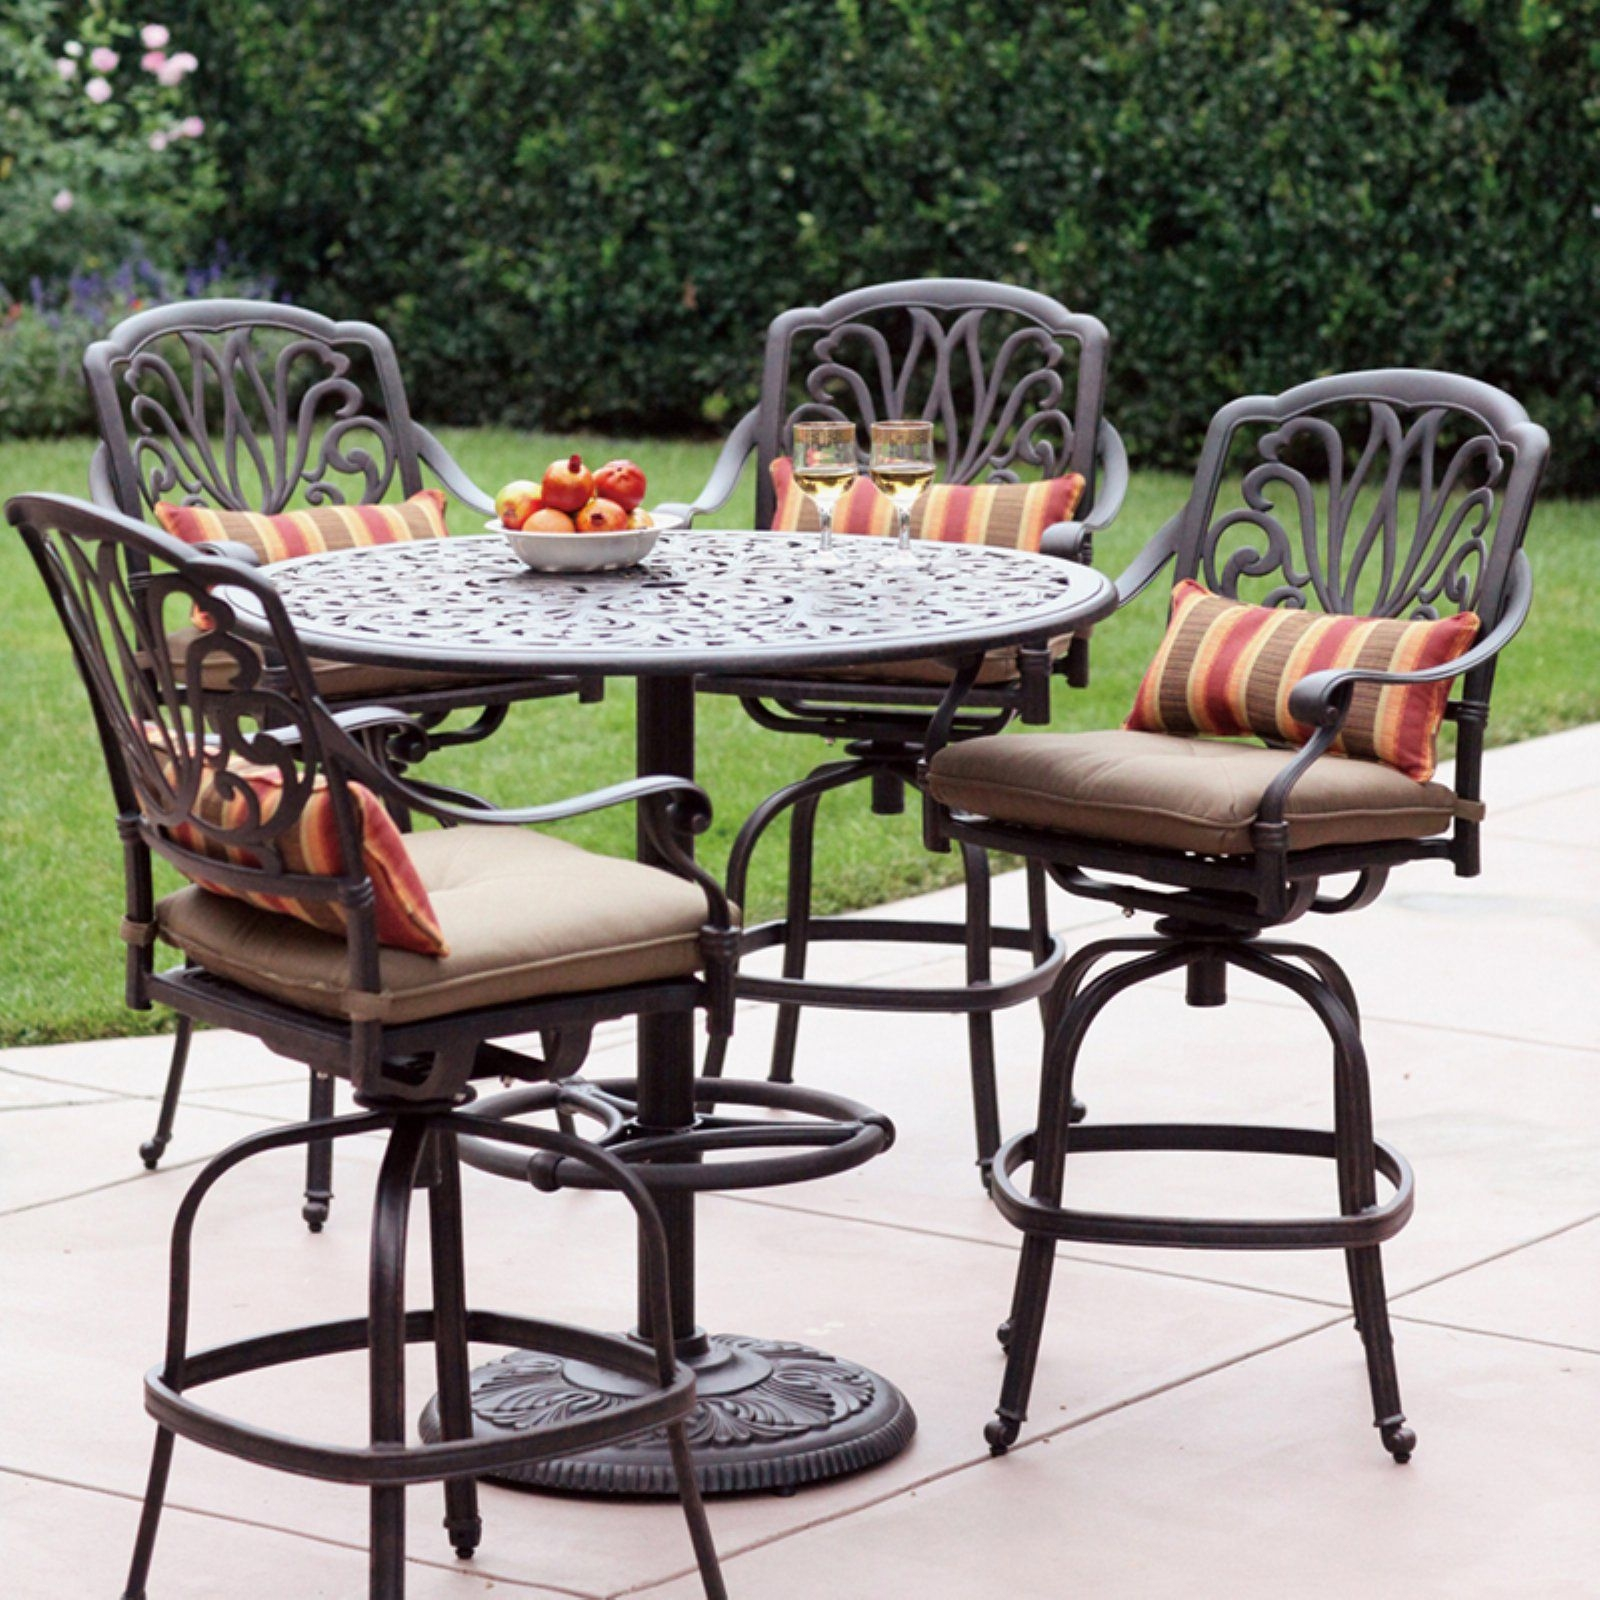 Good Darlee Elisabeth 4 Person Cast Aluminum Patio Bar Set   Antique Bronze